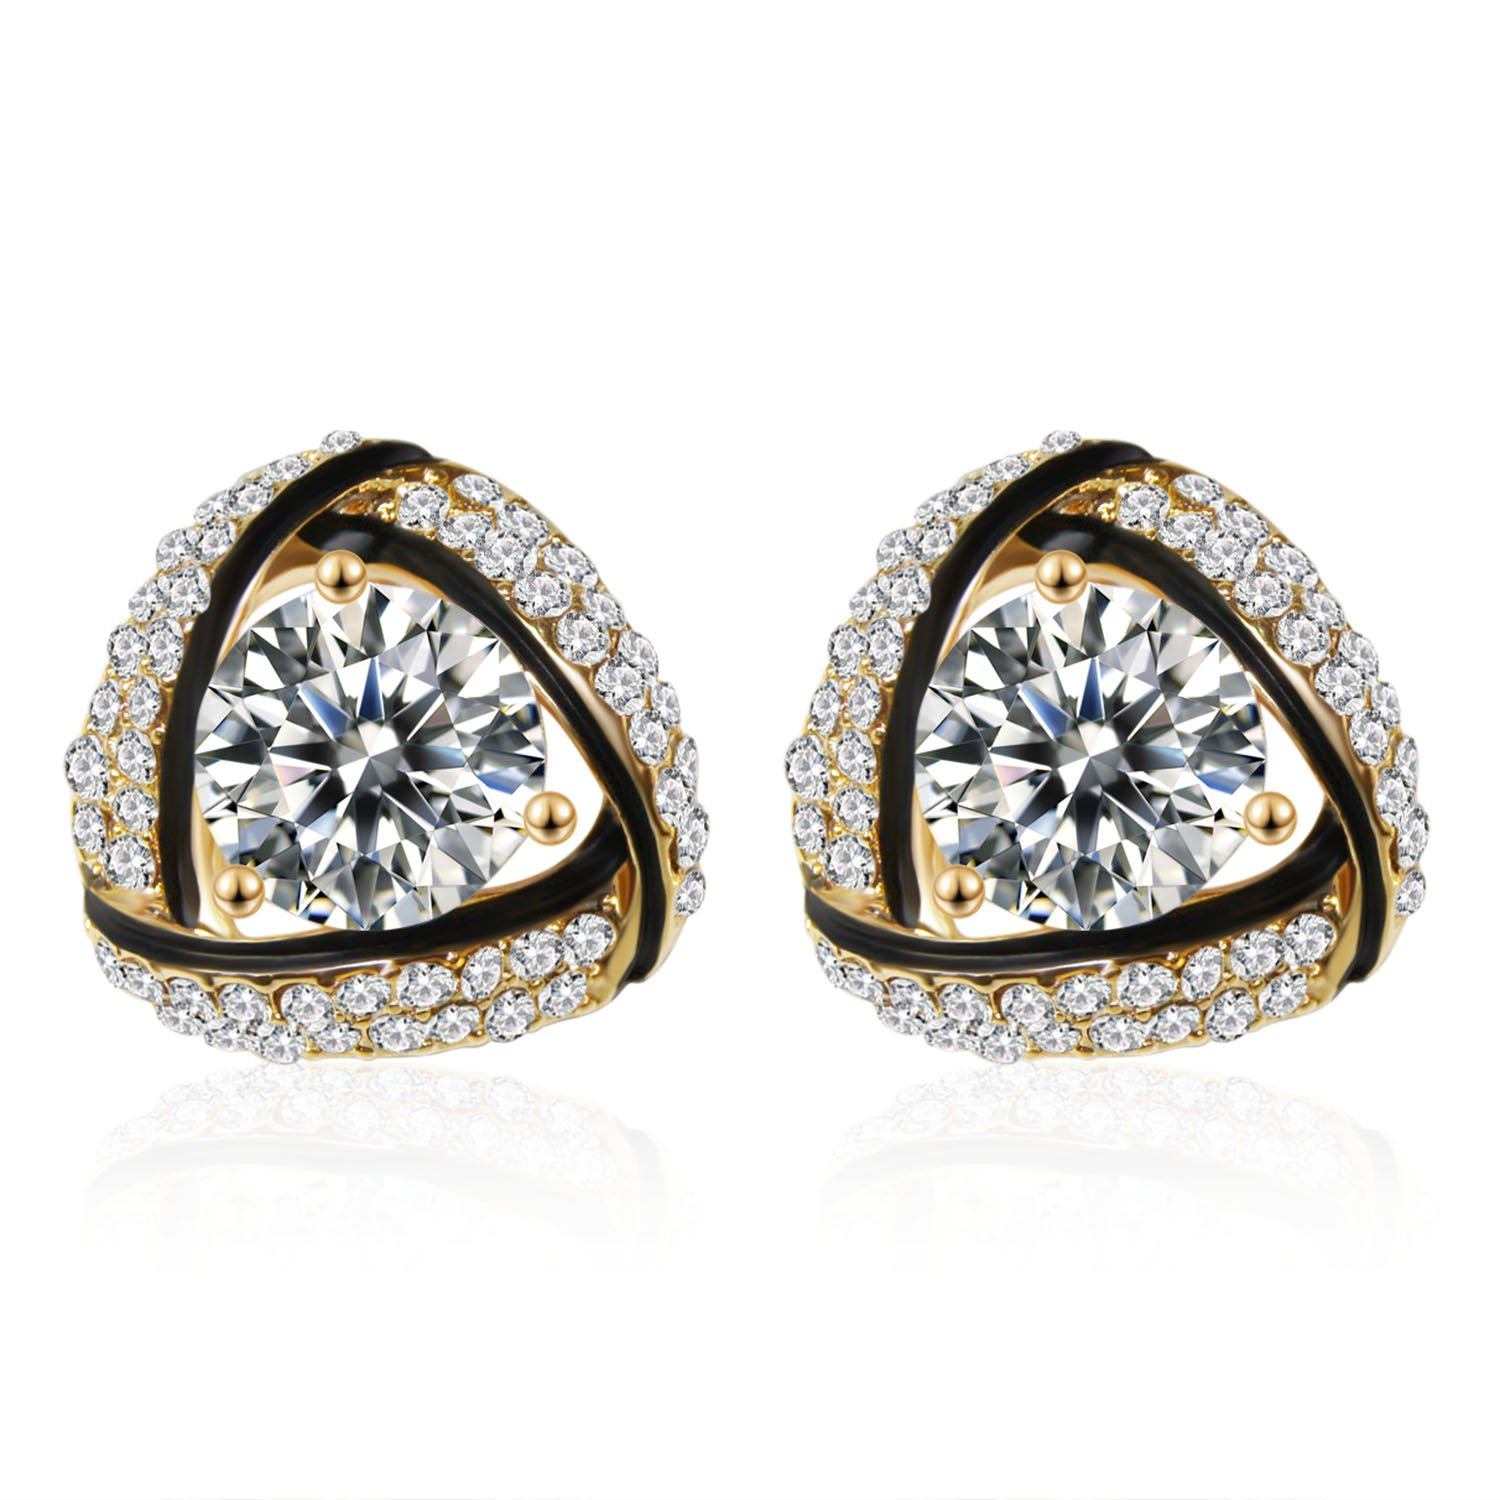 SBLING 18K Gold Plated Cubic Zirconia Triangle Stud Earrings (3.75 cttw)